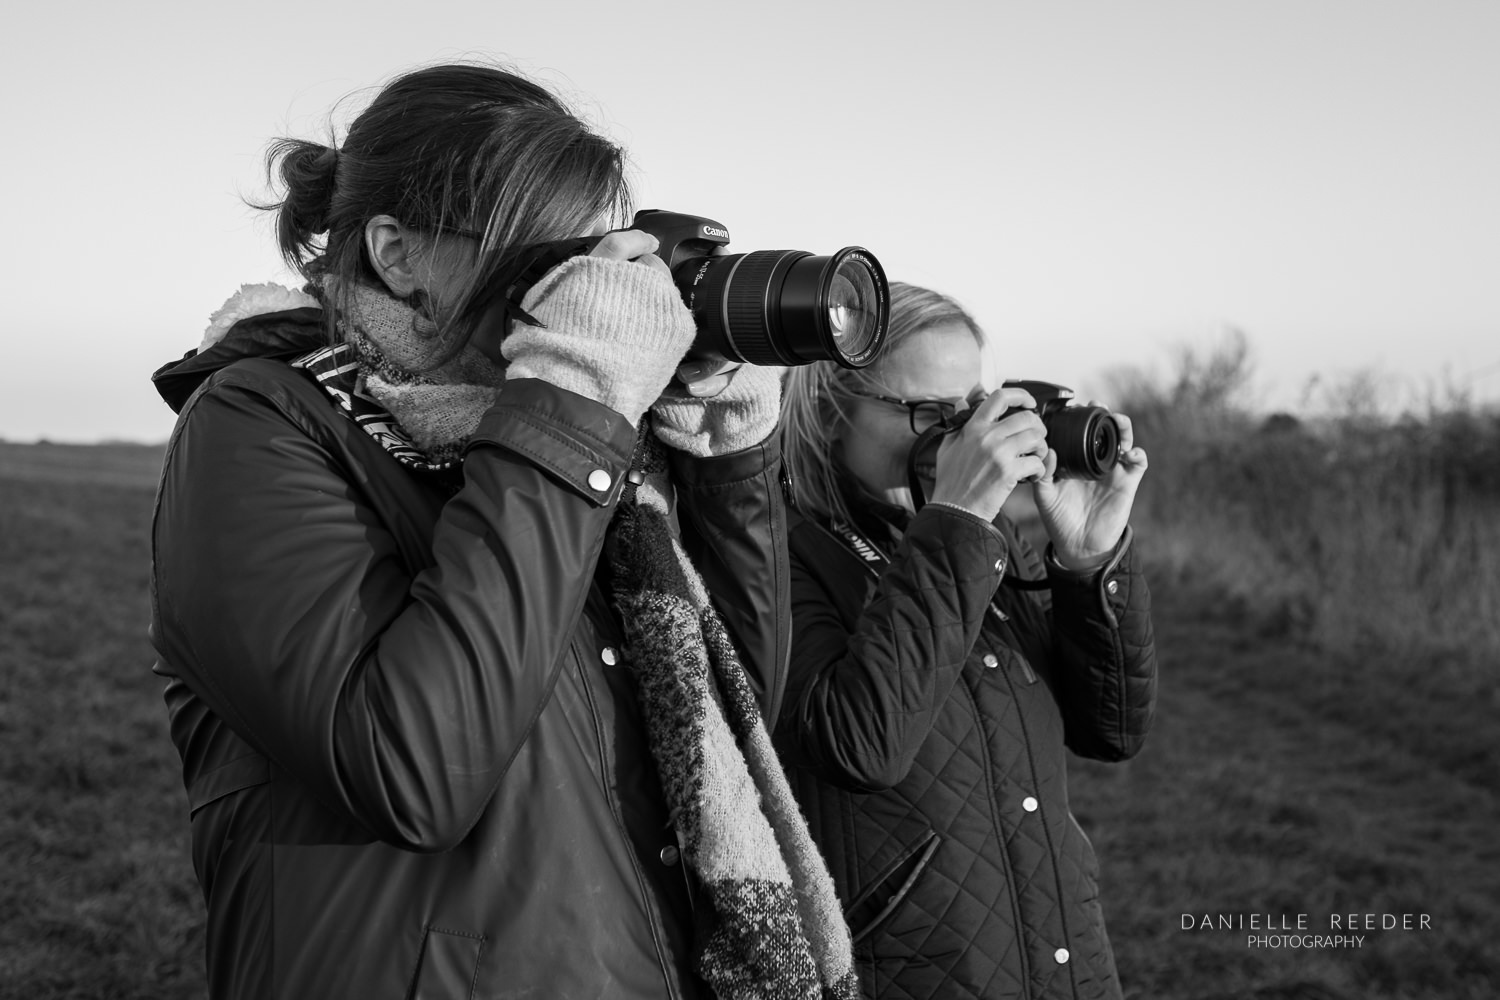 Attendees of course practising with their cameras.